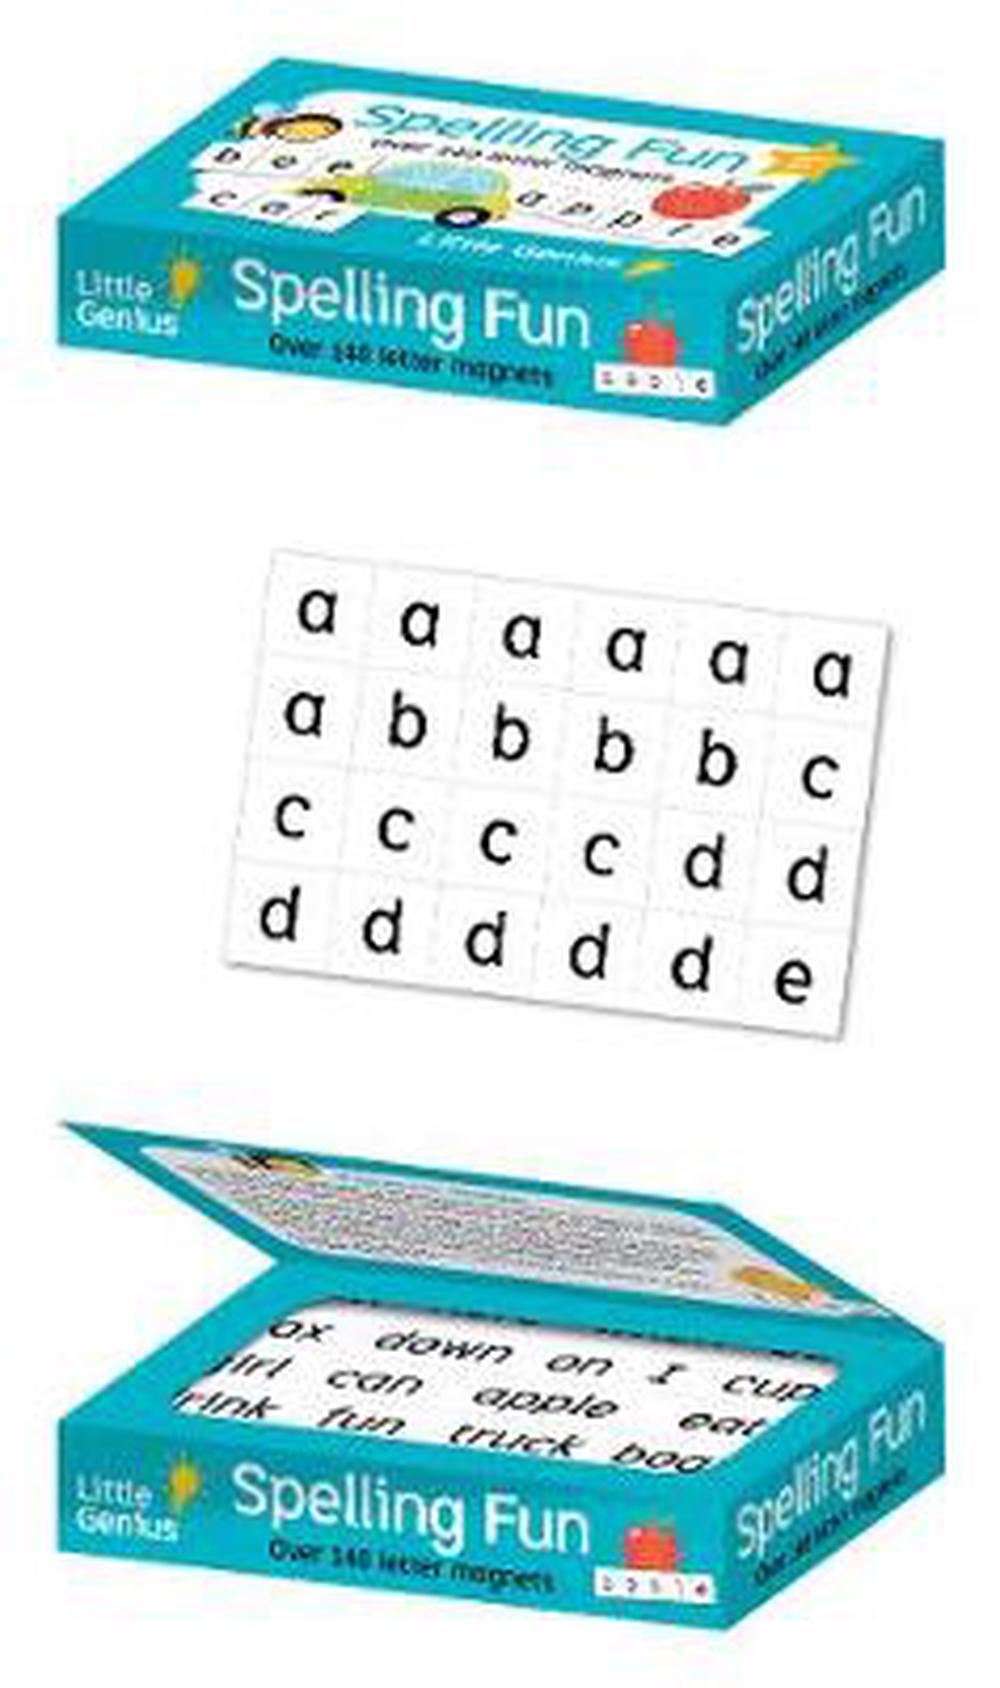 Little Genius Magnetic Wordplay Spelling Fun